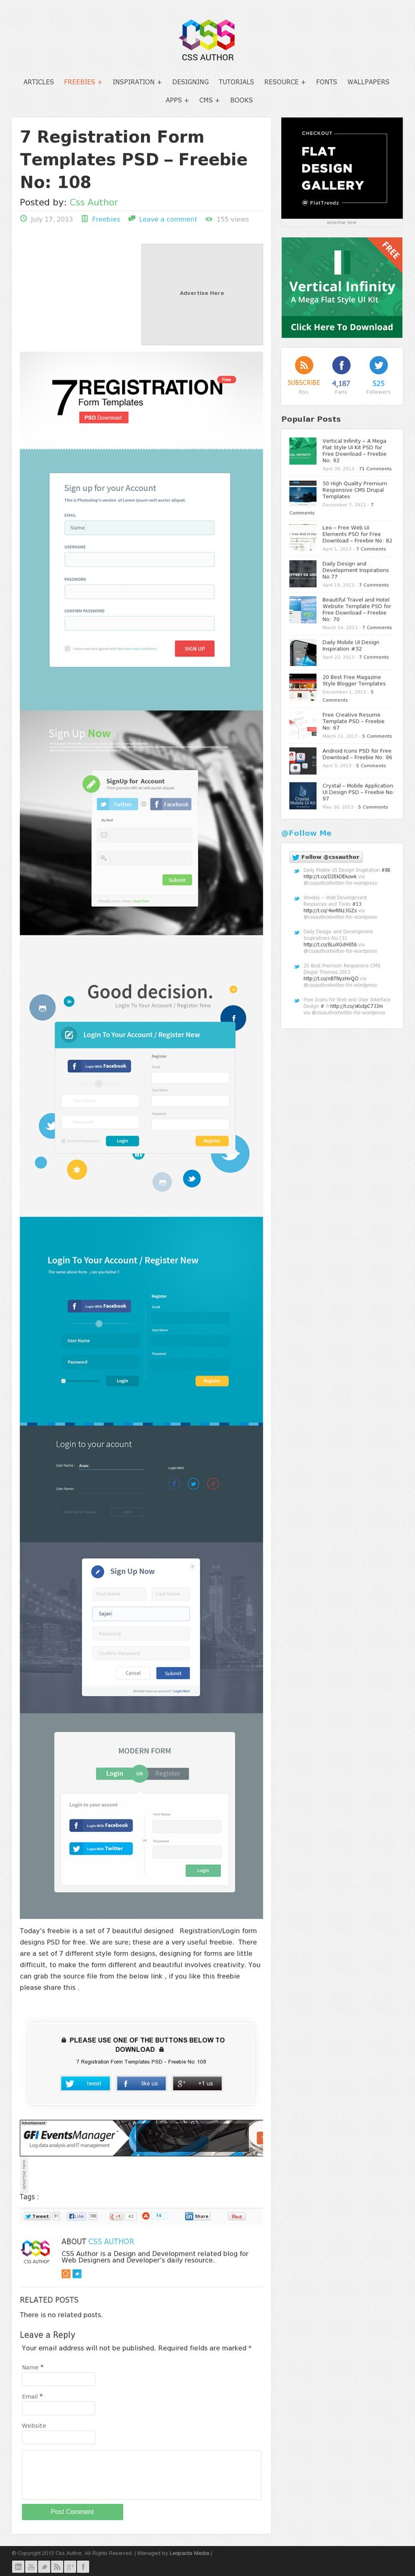 7 Registration Form Templates PSD – Freebie No: 108